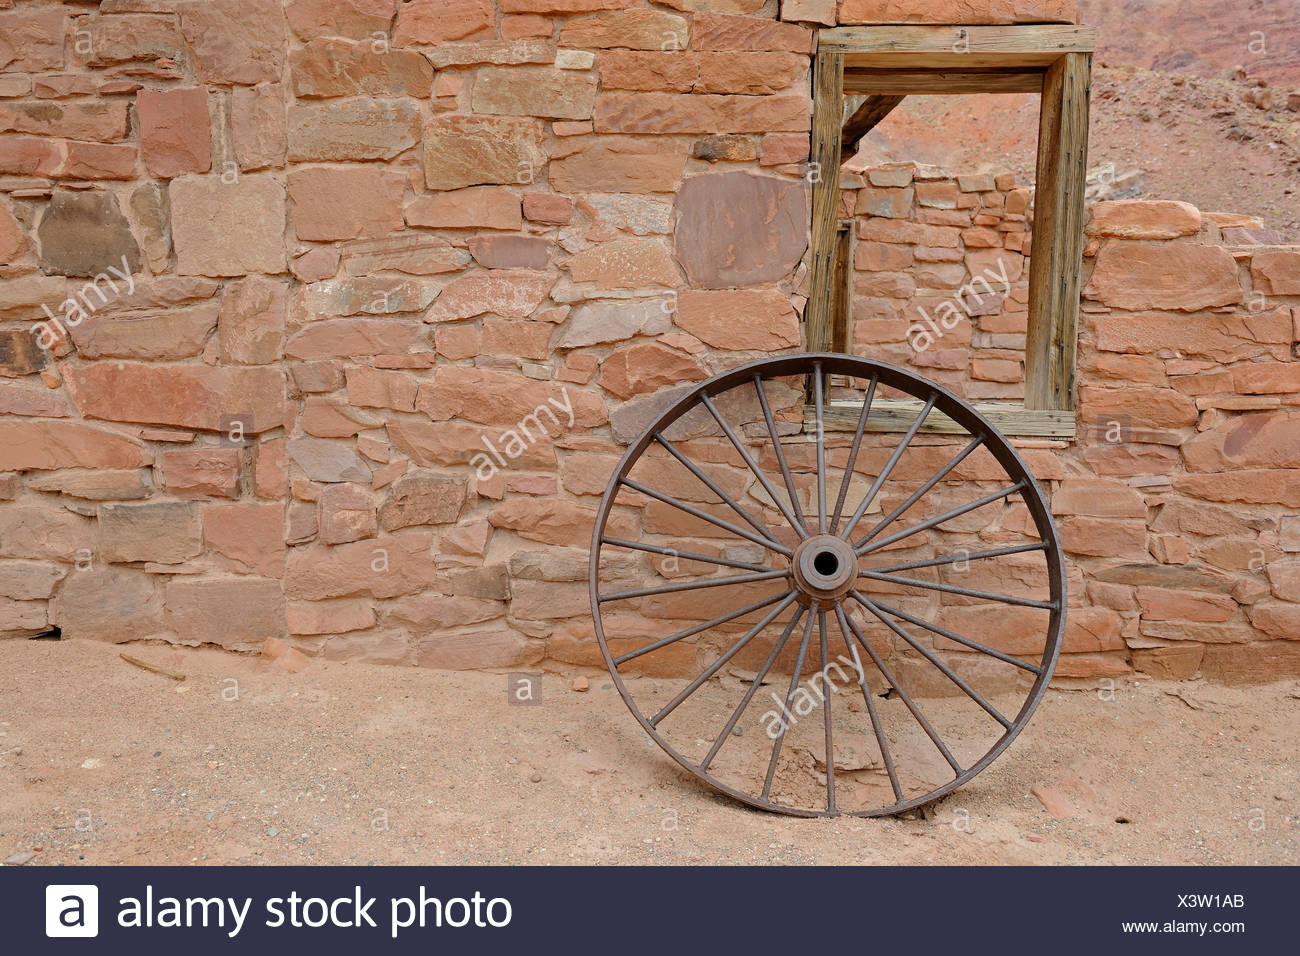 Iron Wheel Wagon High Resolution Stock Photography And Images Alamy